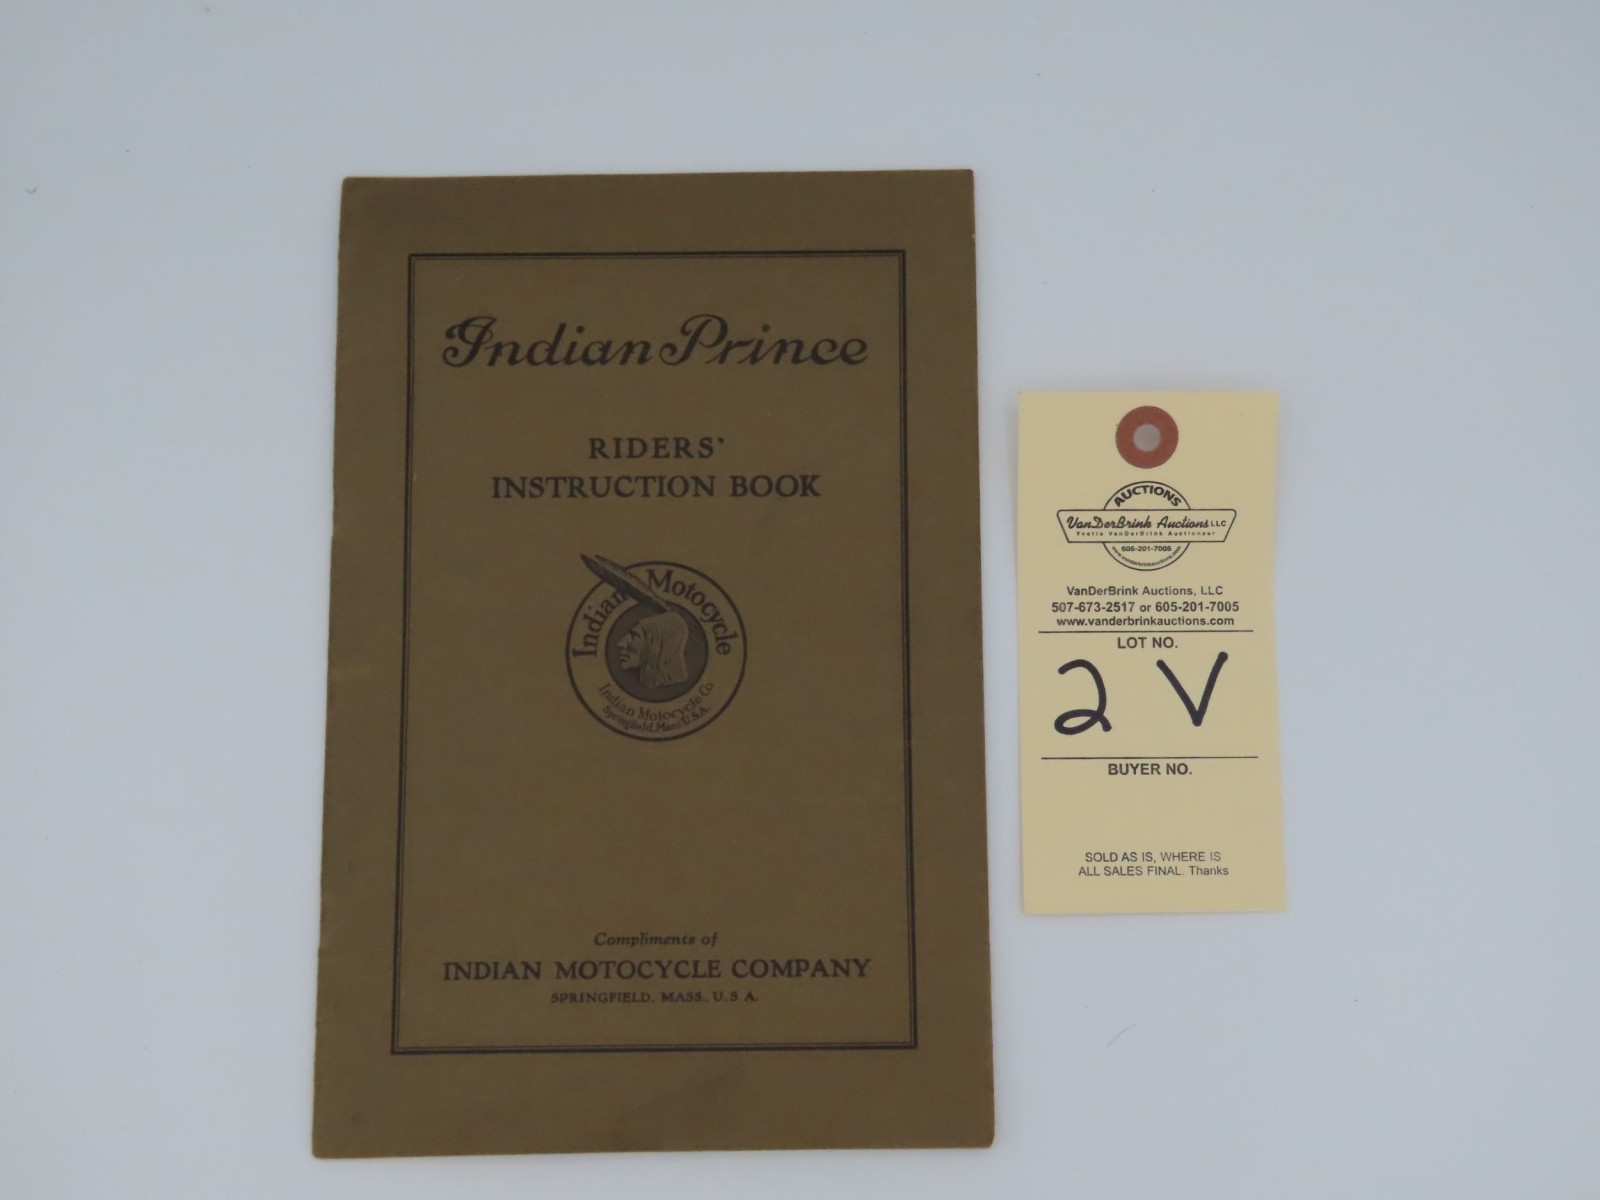 Indian Prince Riders' Instruction Book - Image 1